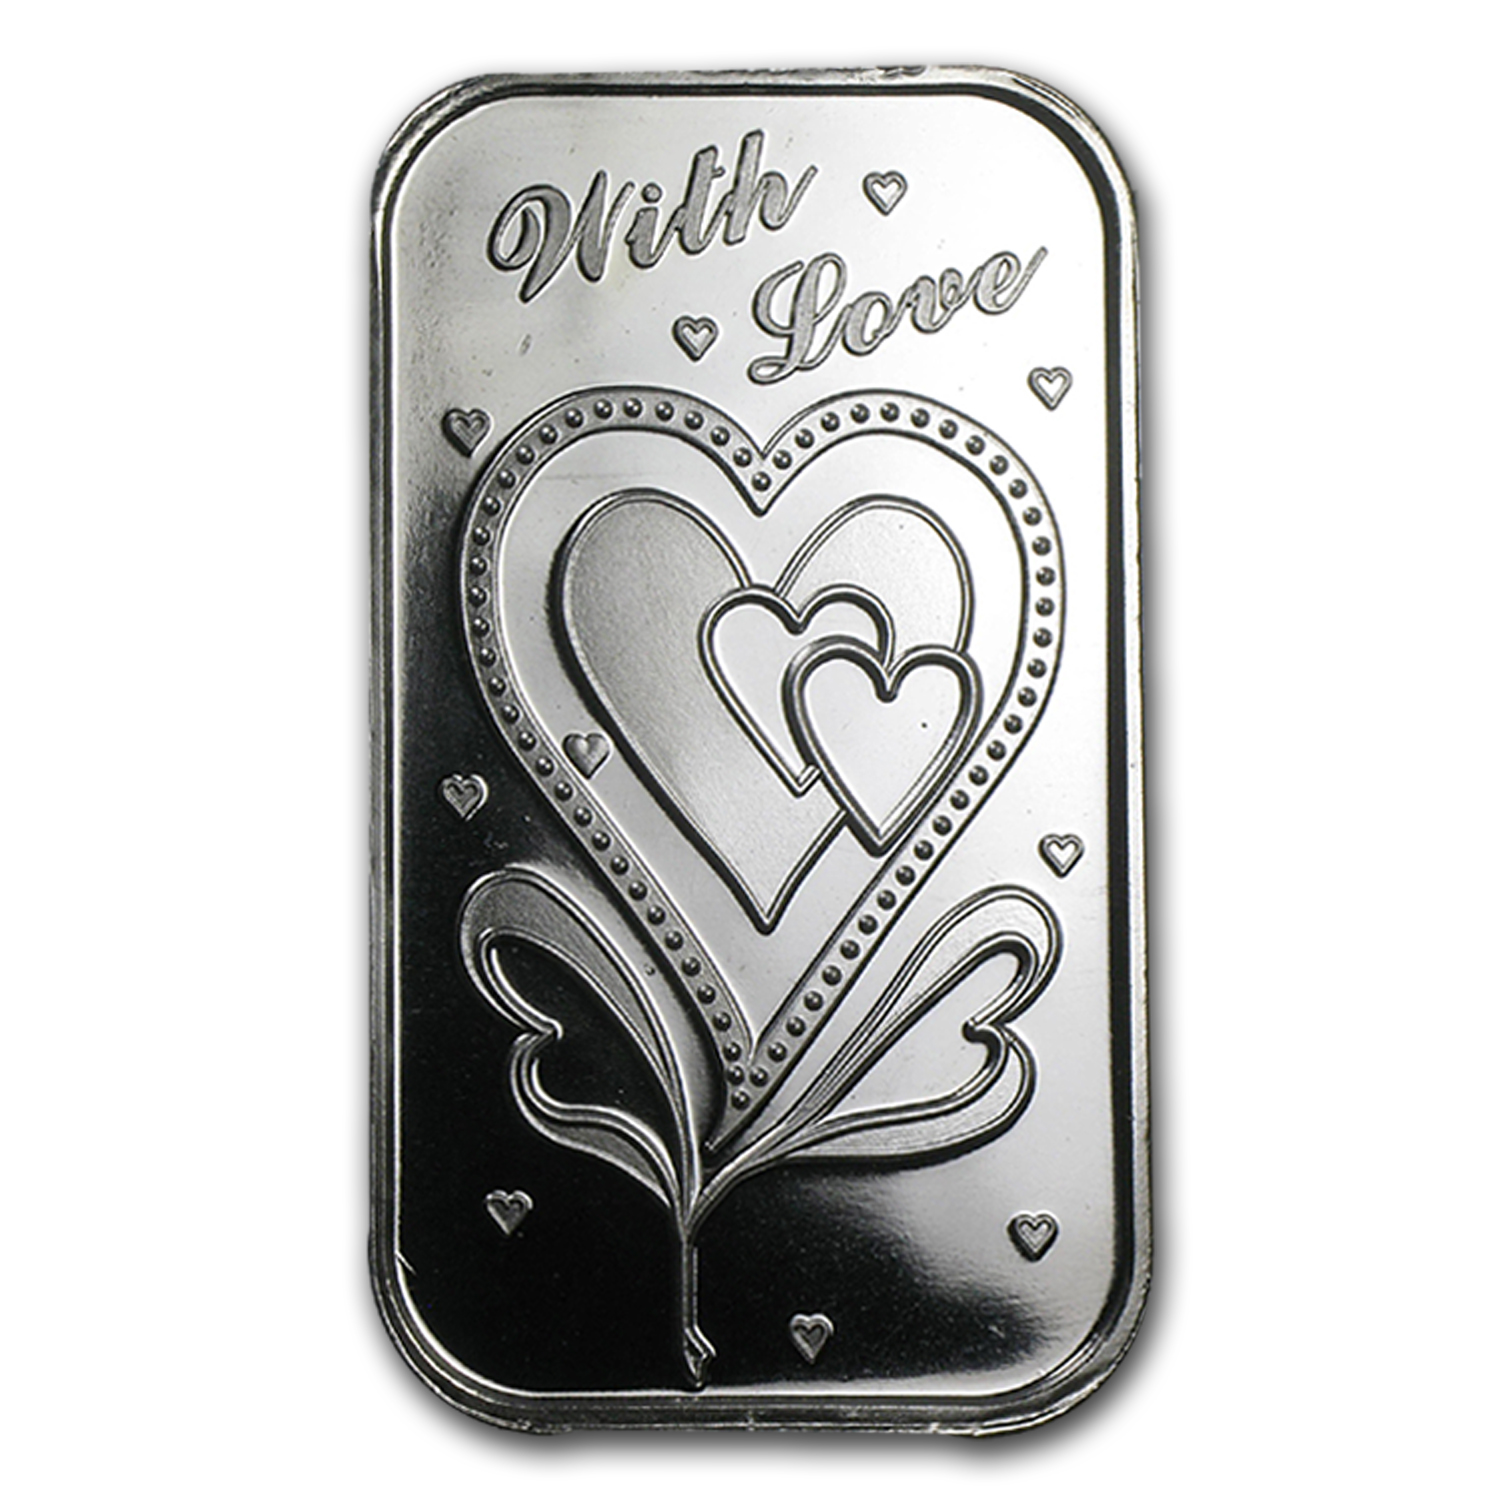 1 oz Silver Bars - With Love (w/Box & Capsule)